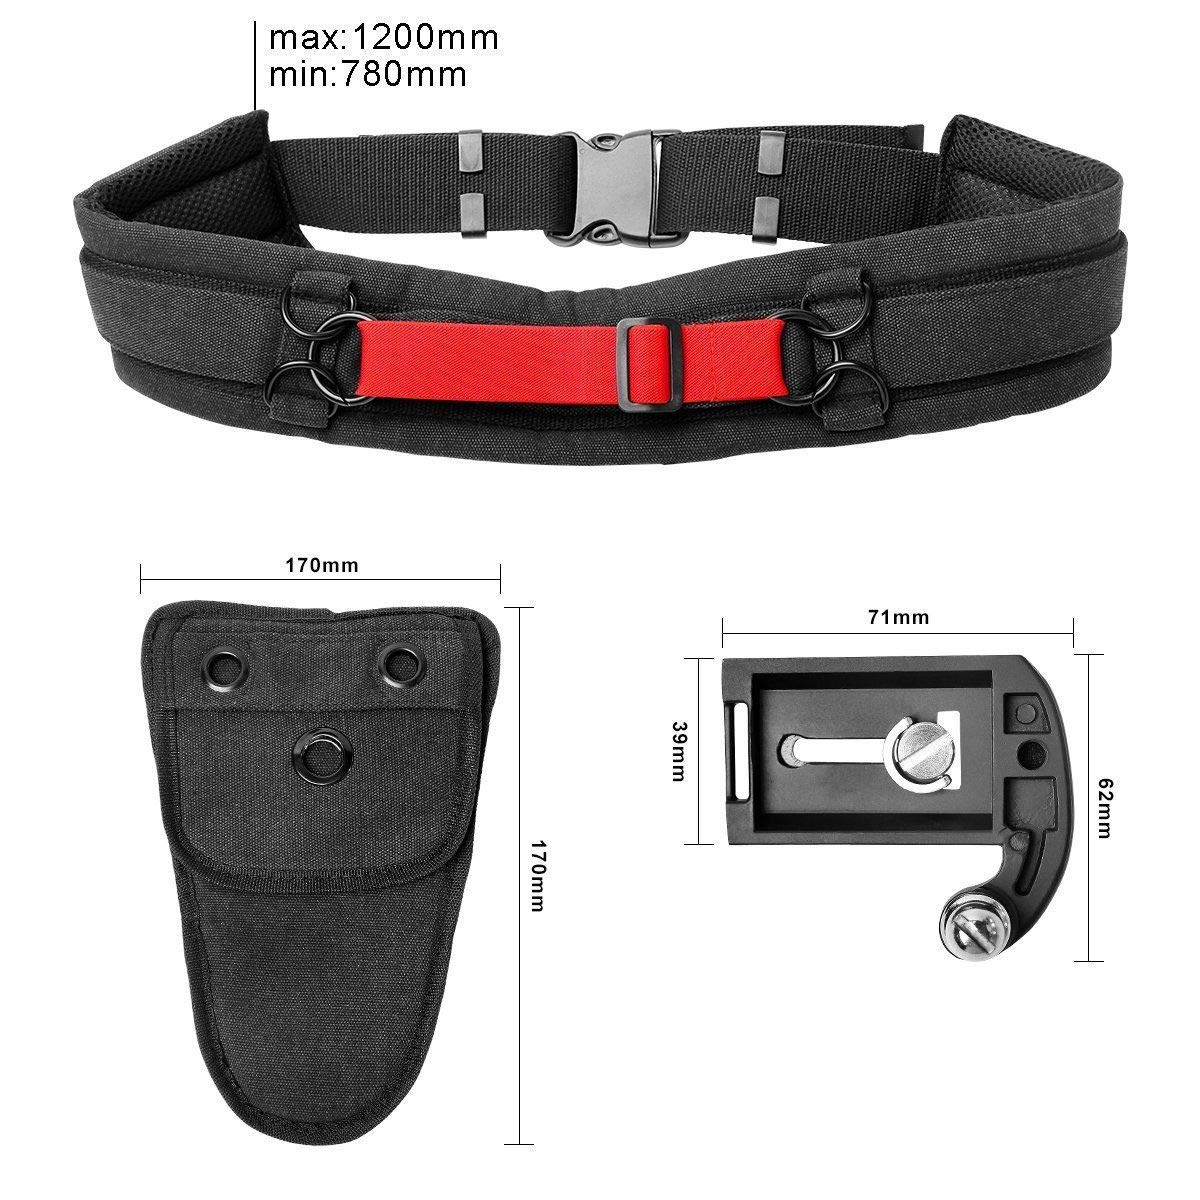 Ultimaxx Rapid Fire Camera Belt with Quick Release Camera Clip and Holster